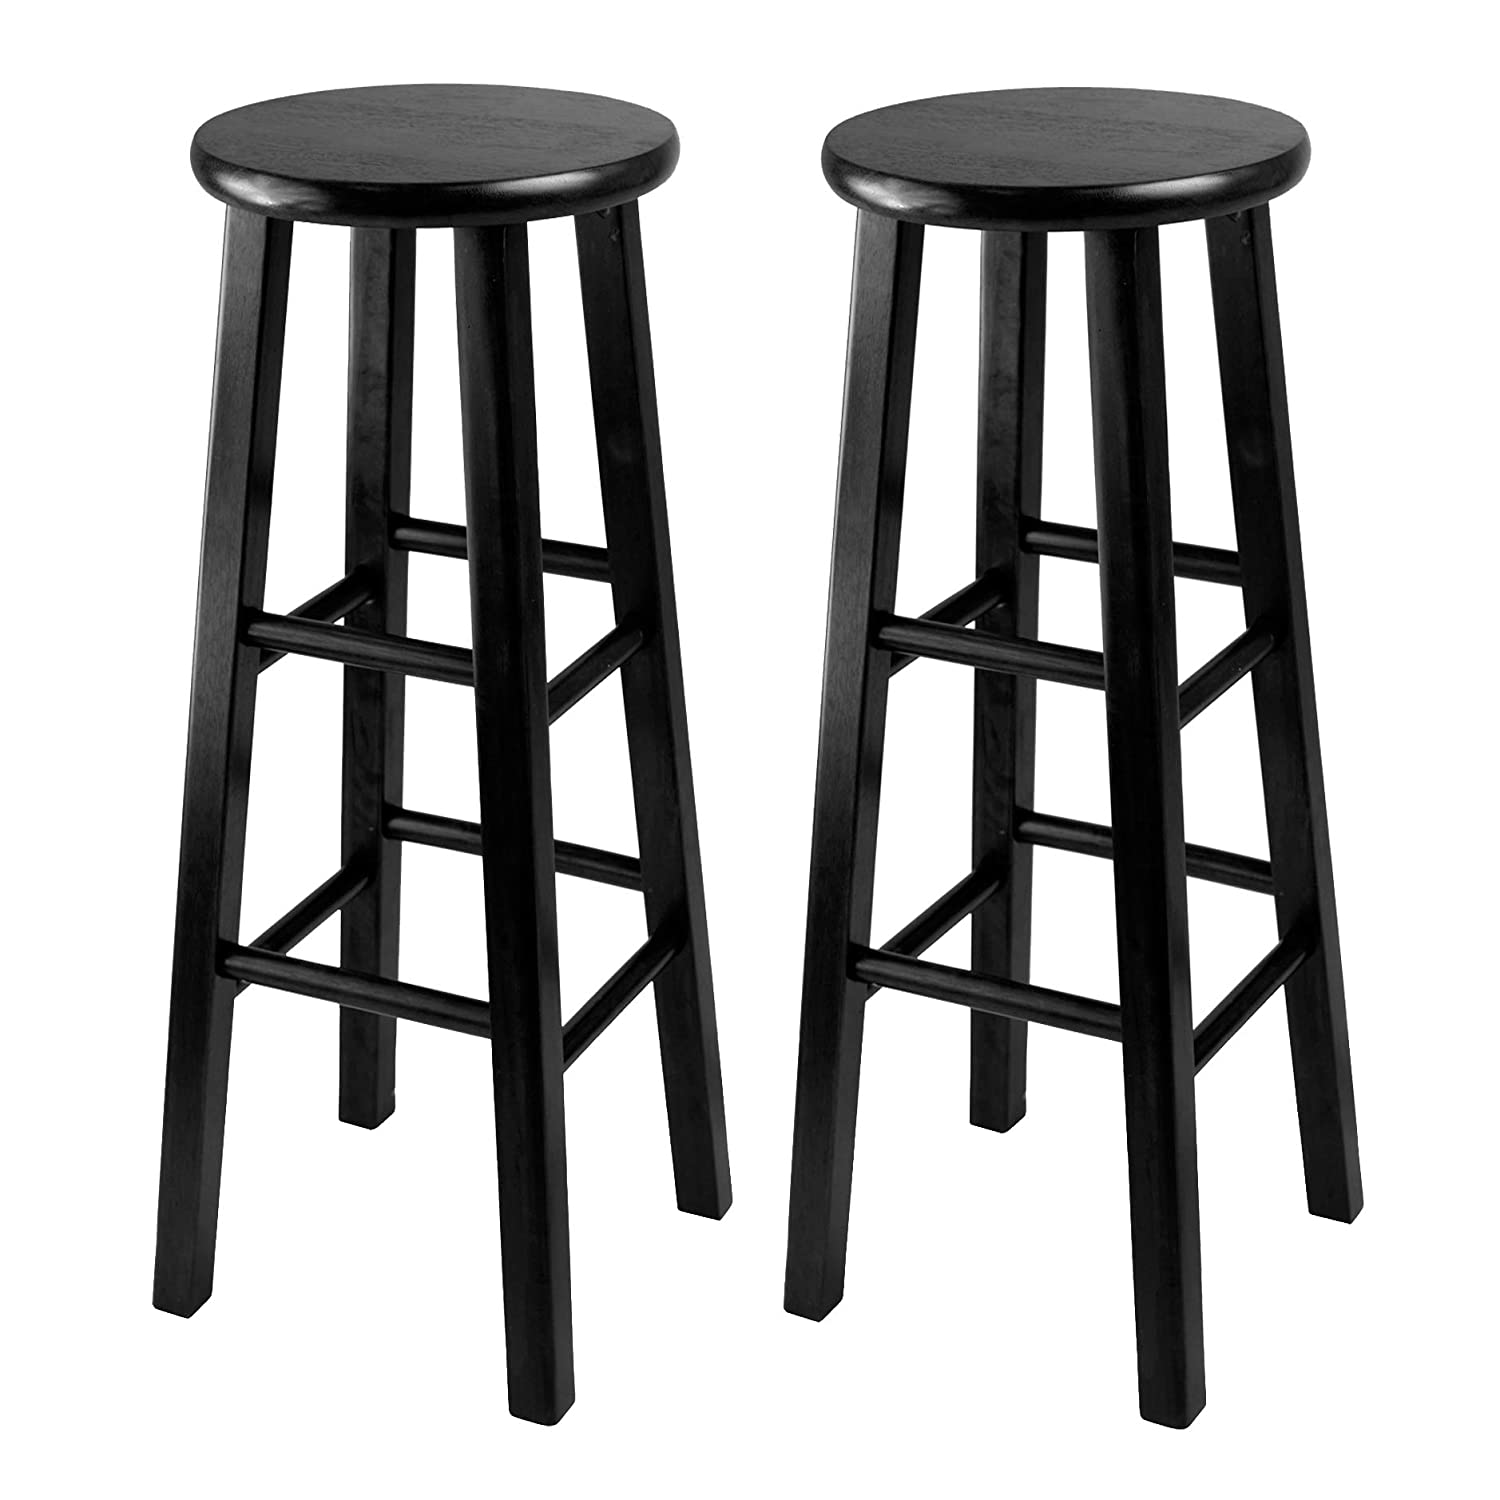 Peachy Winsome 29 Inch Square Leg Bar Stool Black Set Of 2 Uwap Interior Chair Design Uwaporg